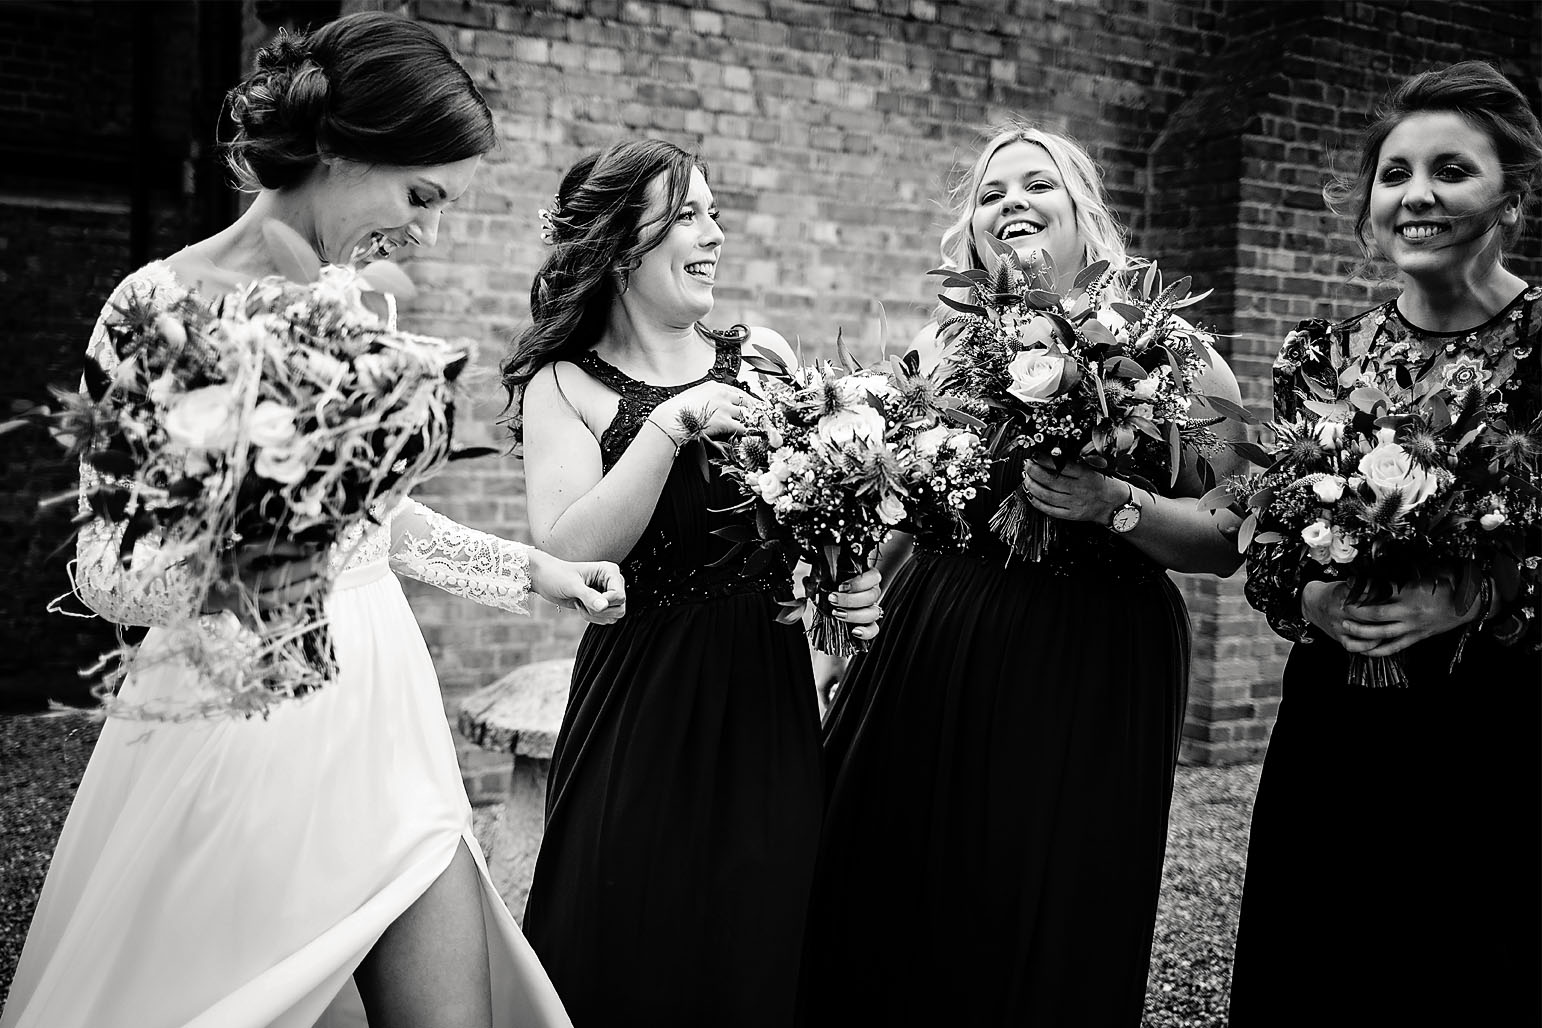 Candid image of Bride and bridesmaids laughing